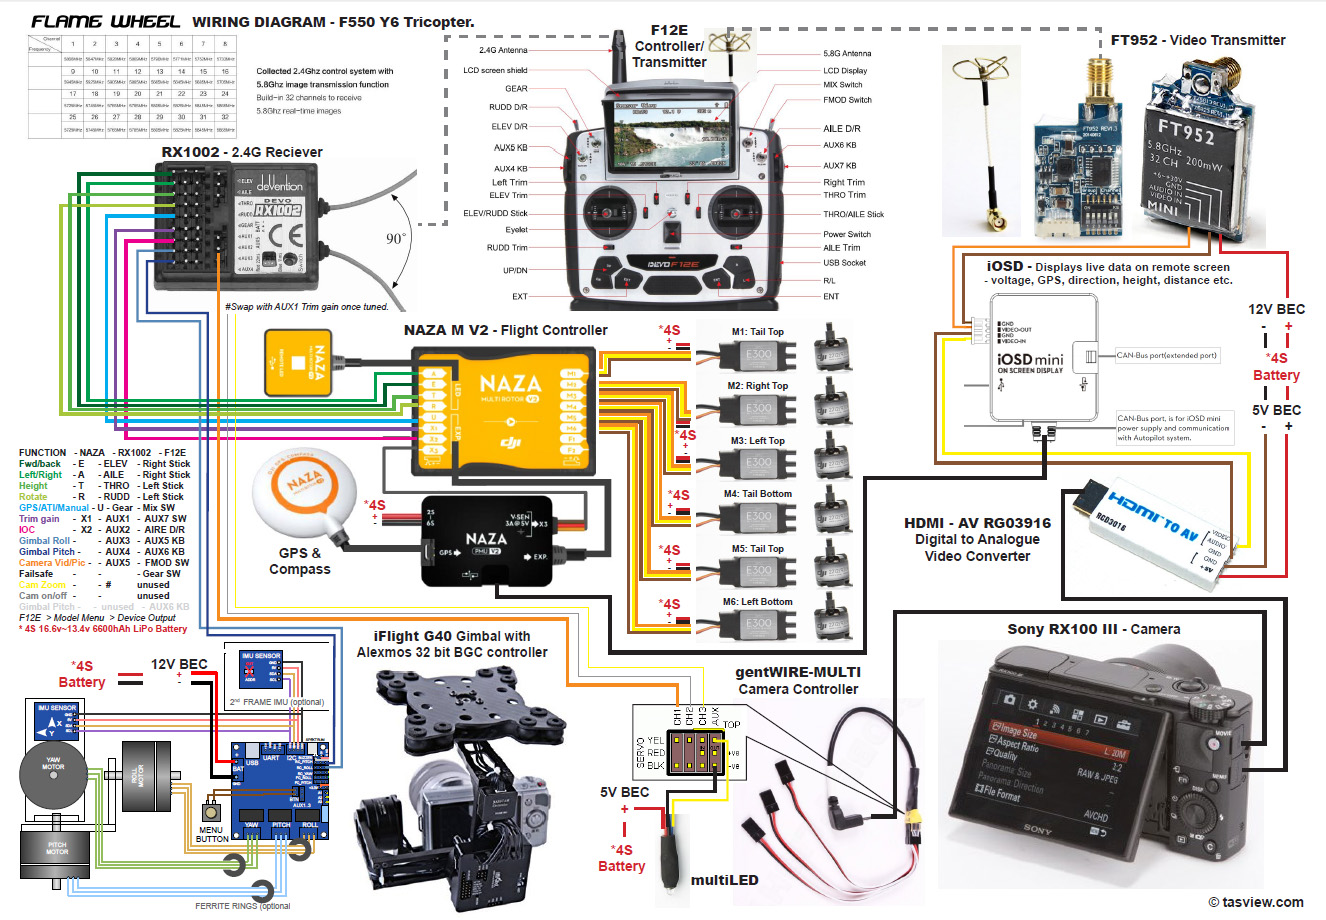 dji wiring diagram read all wiring diagram Wiring a Homeline Service Panel